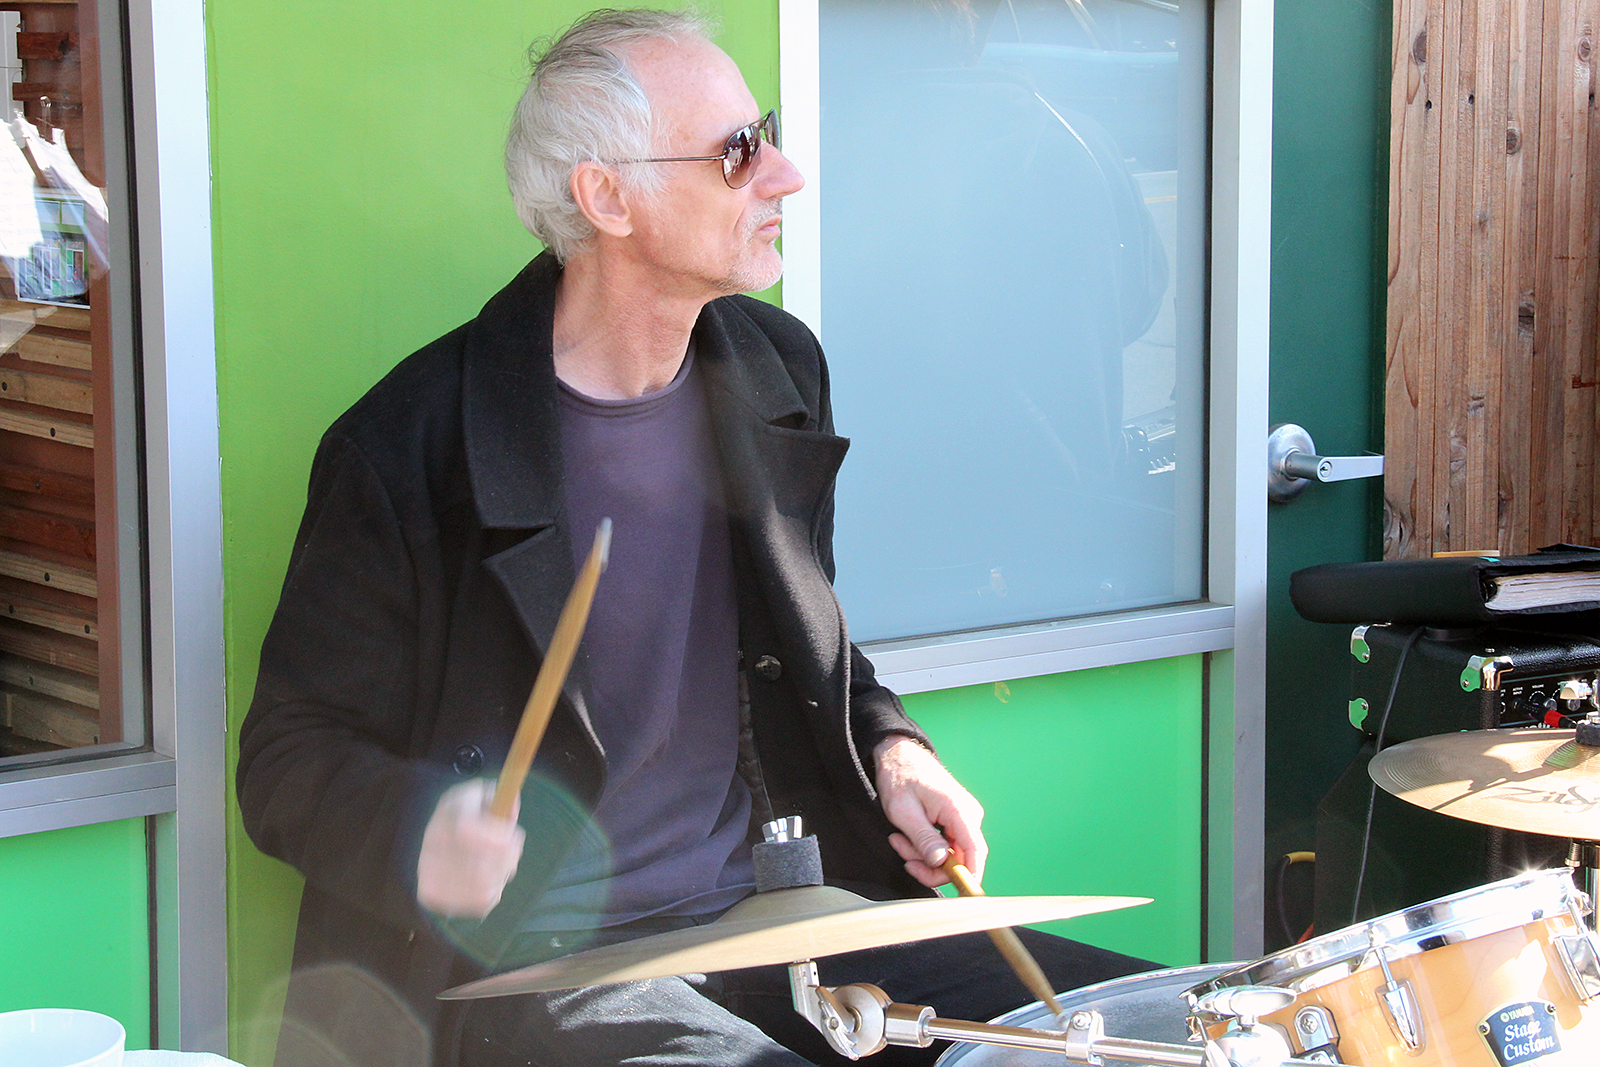 A man drums on Mission Street.